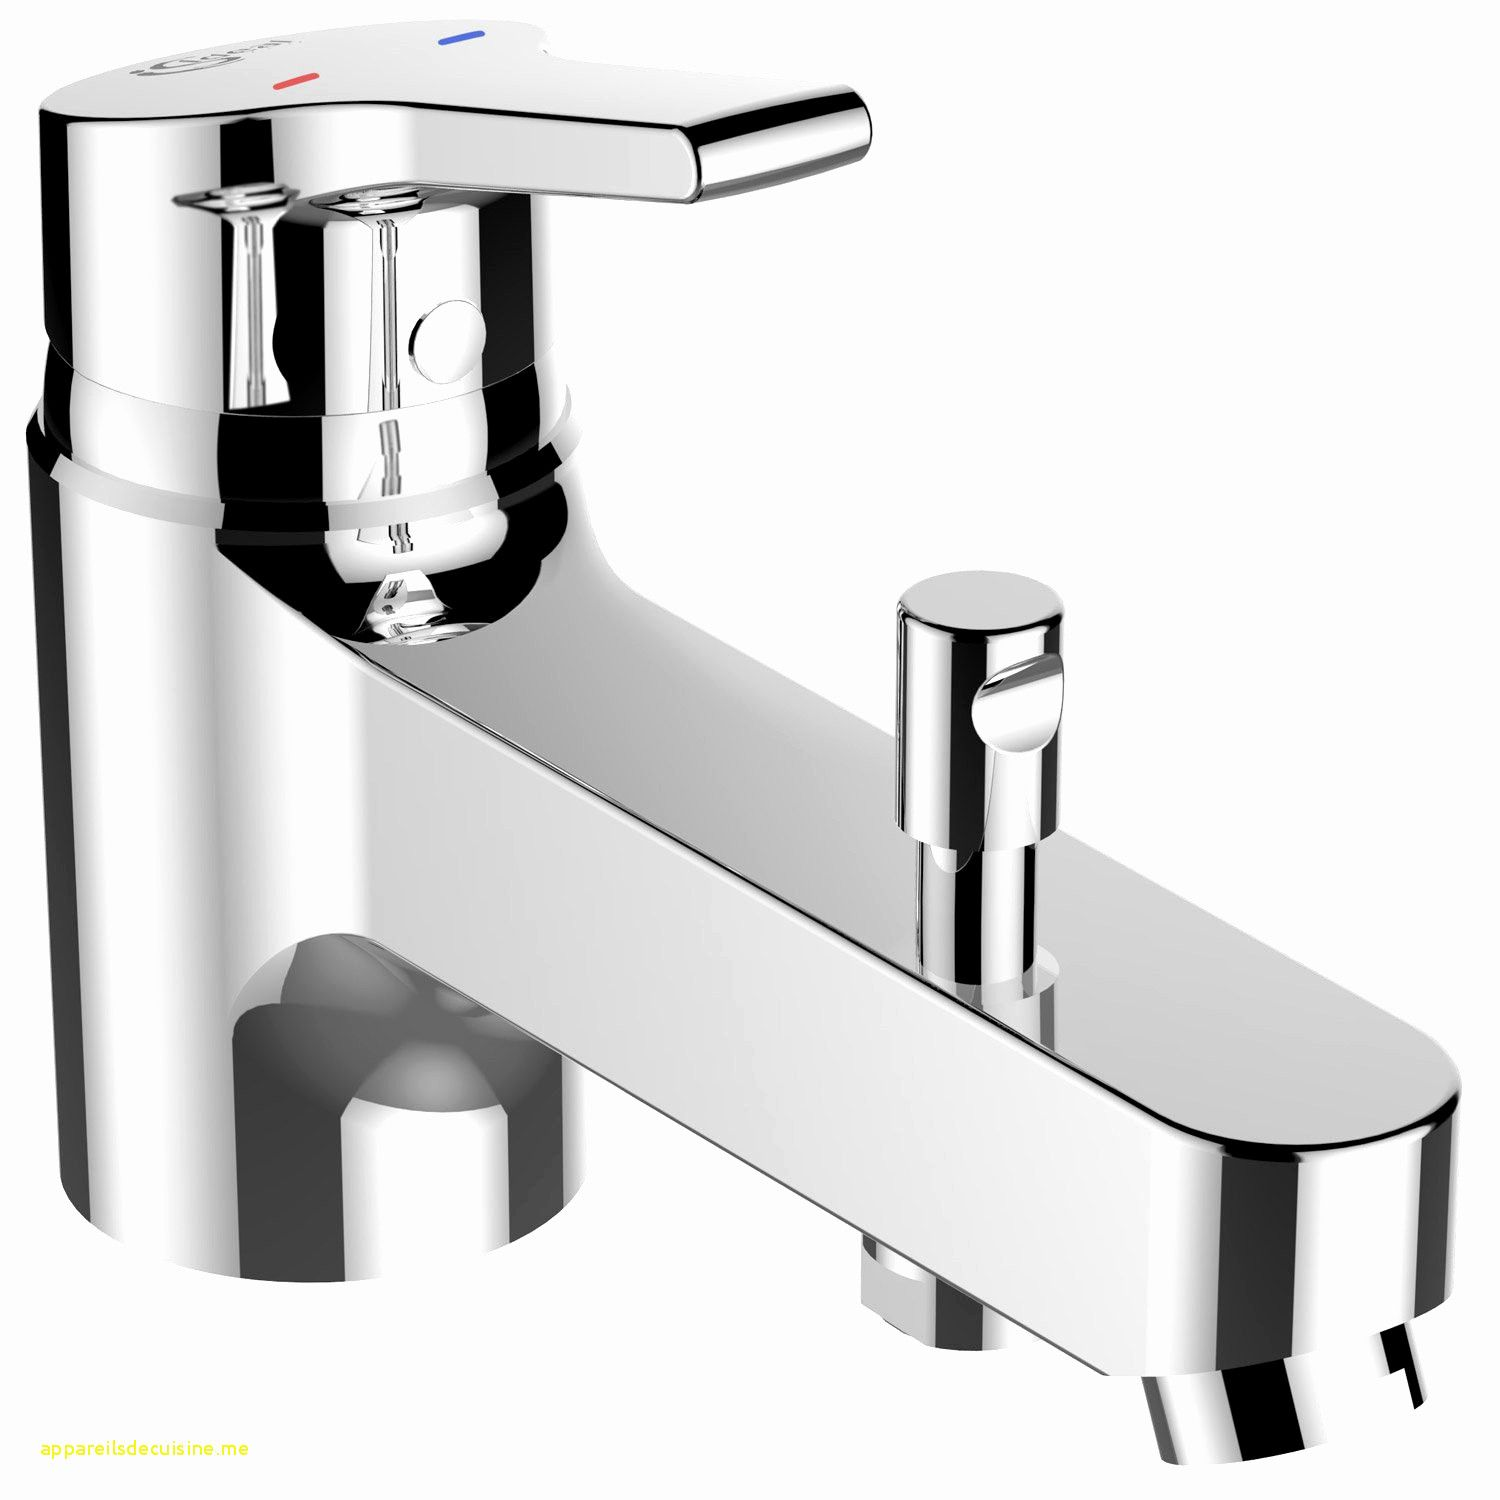 Baignoire Sabot Leroy Merlin Baignoire Sabot Leroy Merlin Baignoire Rectangulaire L 105x L 70 Cm Leroy Merlin Baignoir Cheap Bathtubs Bathtub Faucet Bathroom